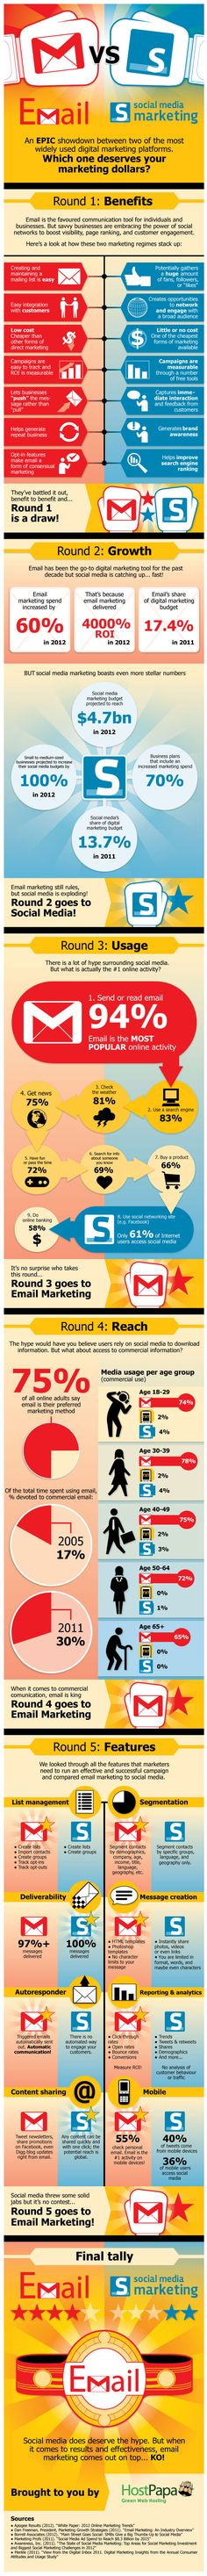 Don't let anyone tell you email is dead! Email Vs Social Media Marketing - [INFOGRAPHIC]